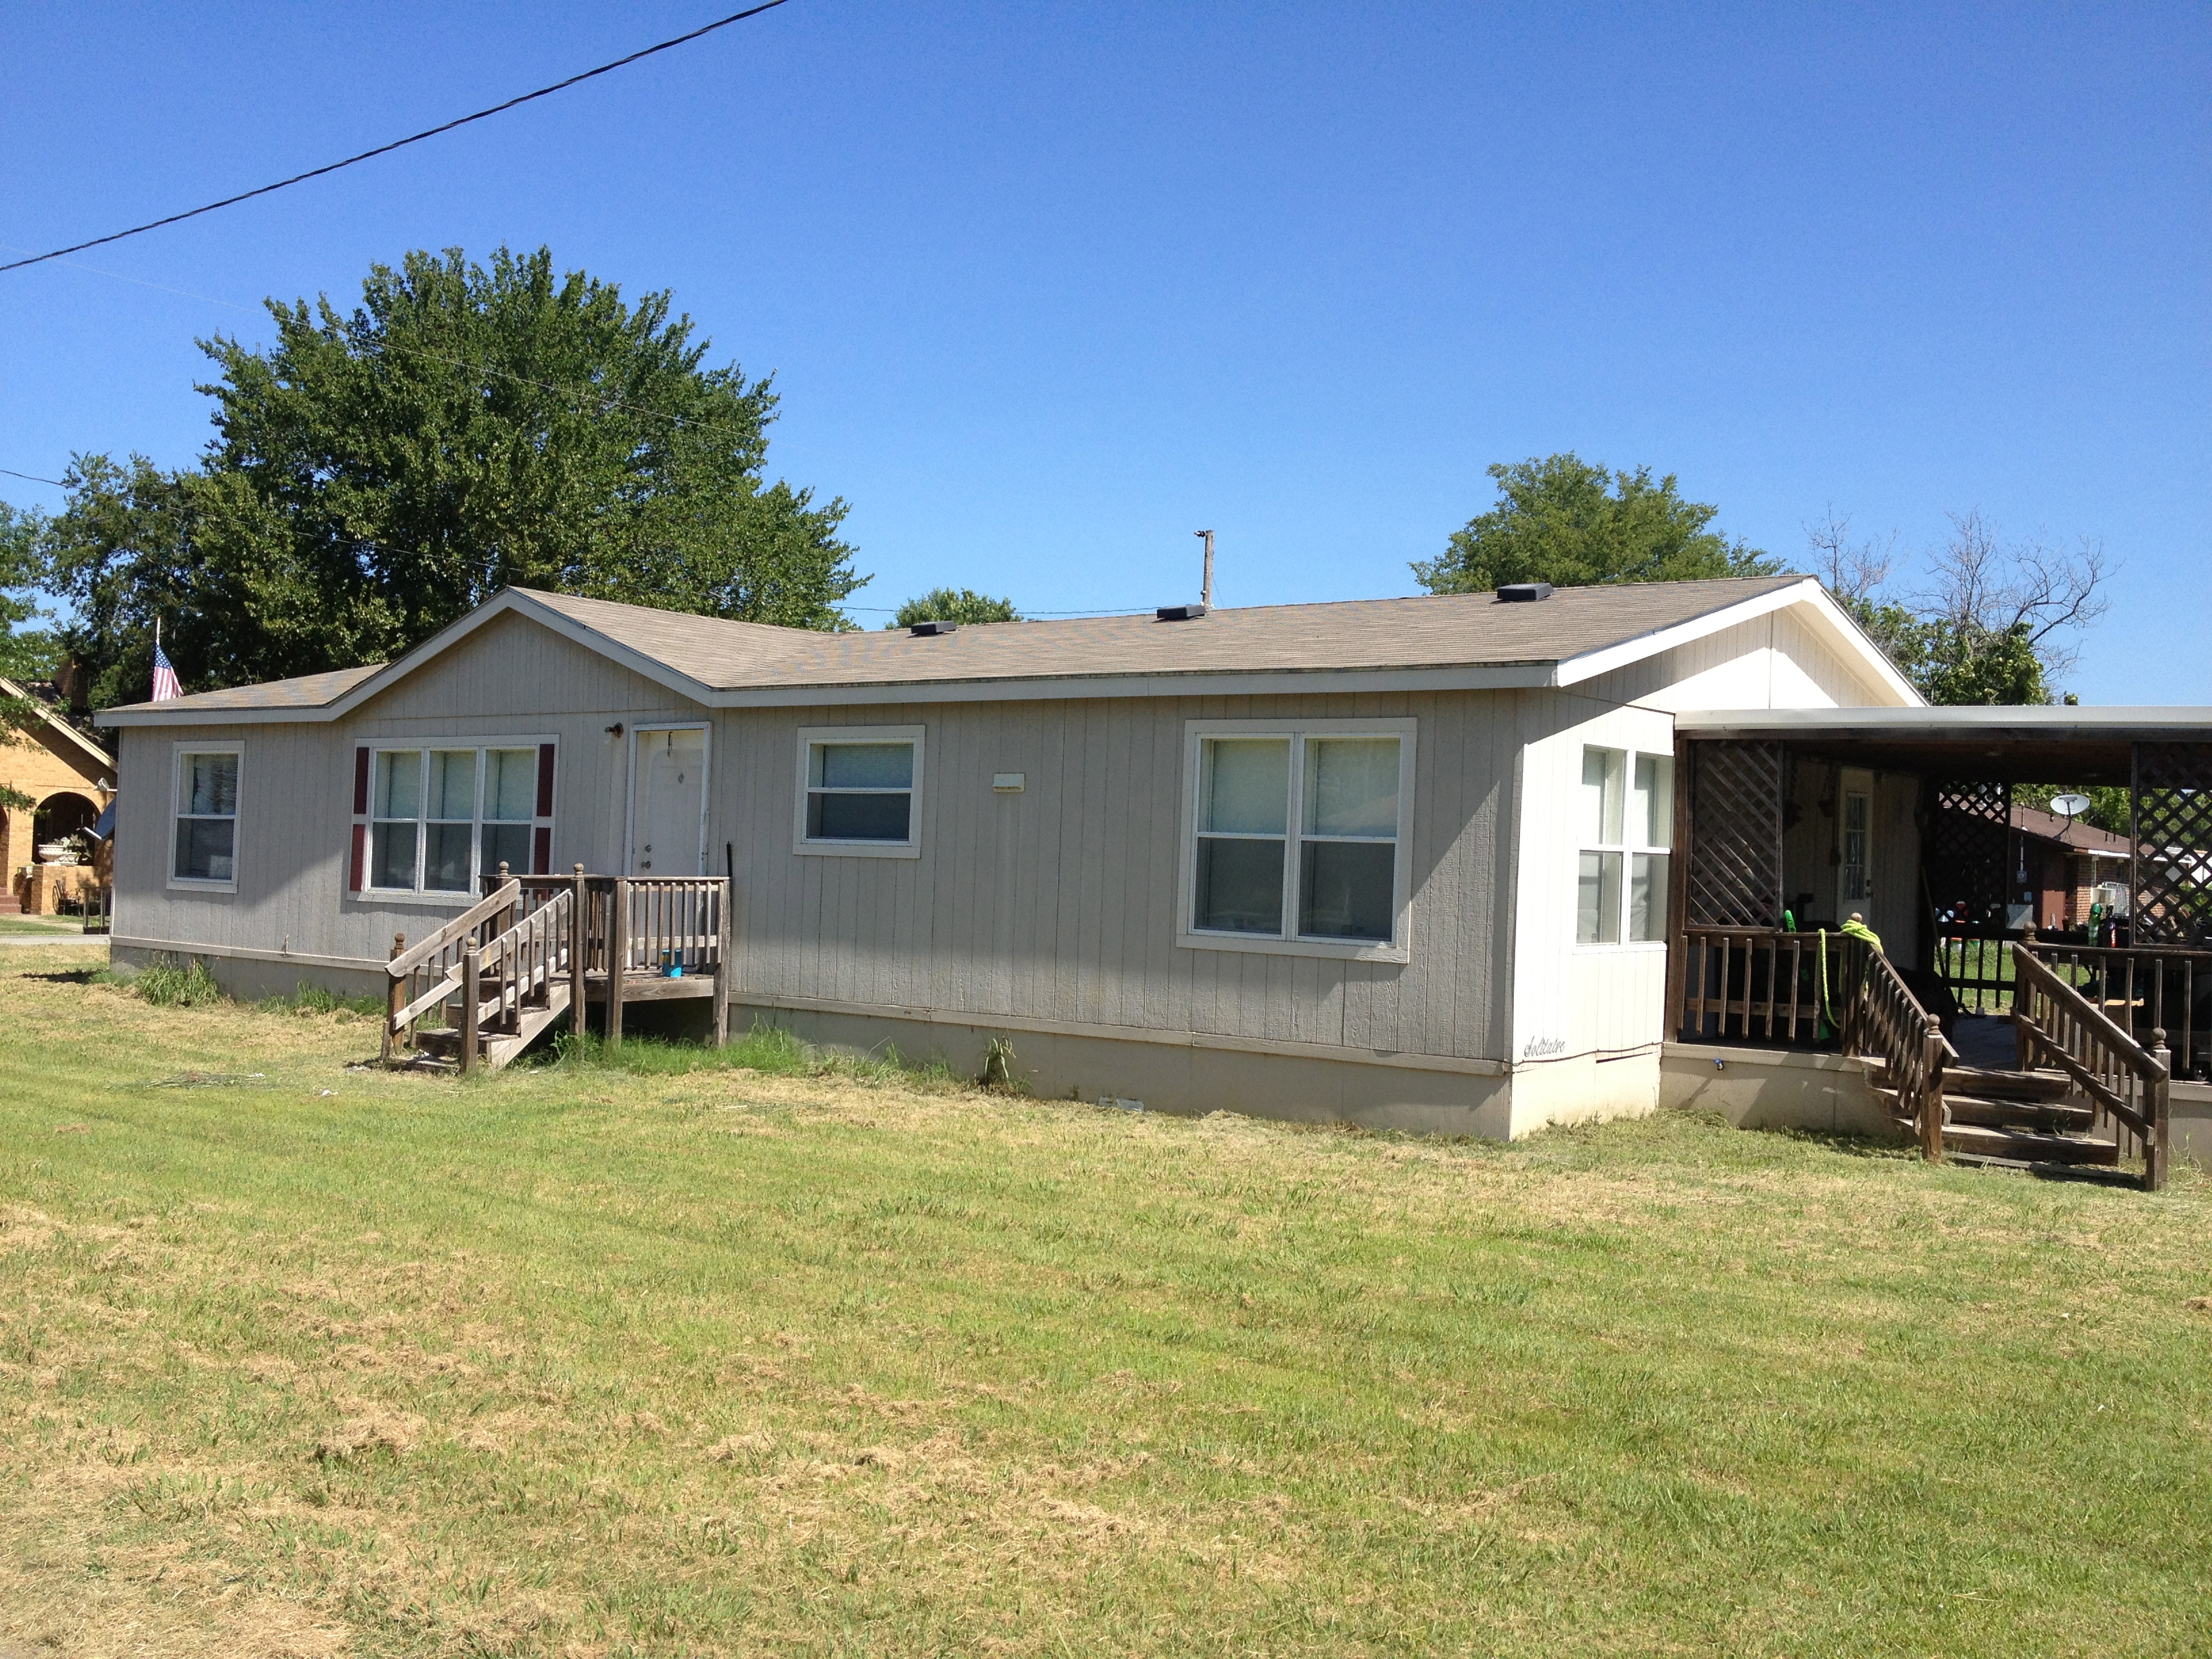 mobile home for rent  plans also houses for rent near me on 3 bedroom. 3 Bedroom Mobile Homes For Rent     apartment for rent one bedroom